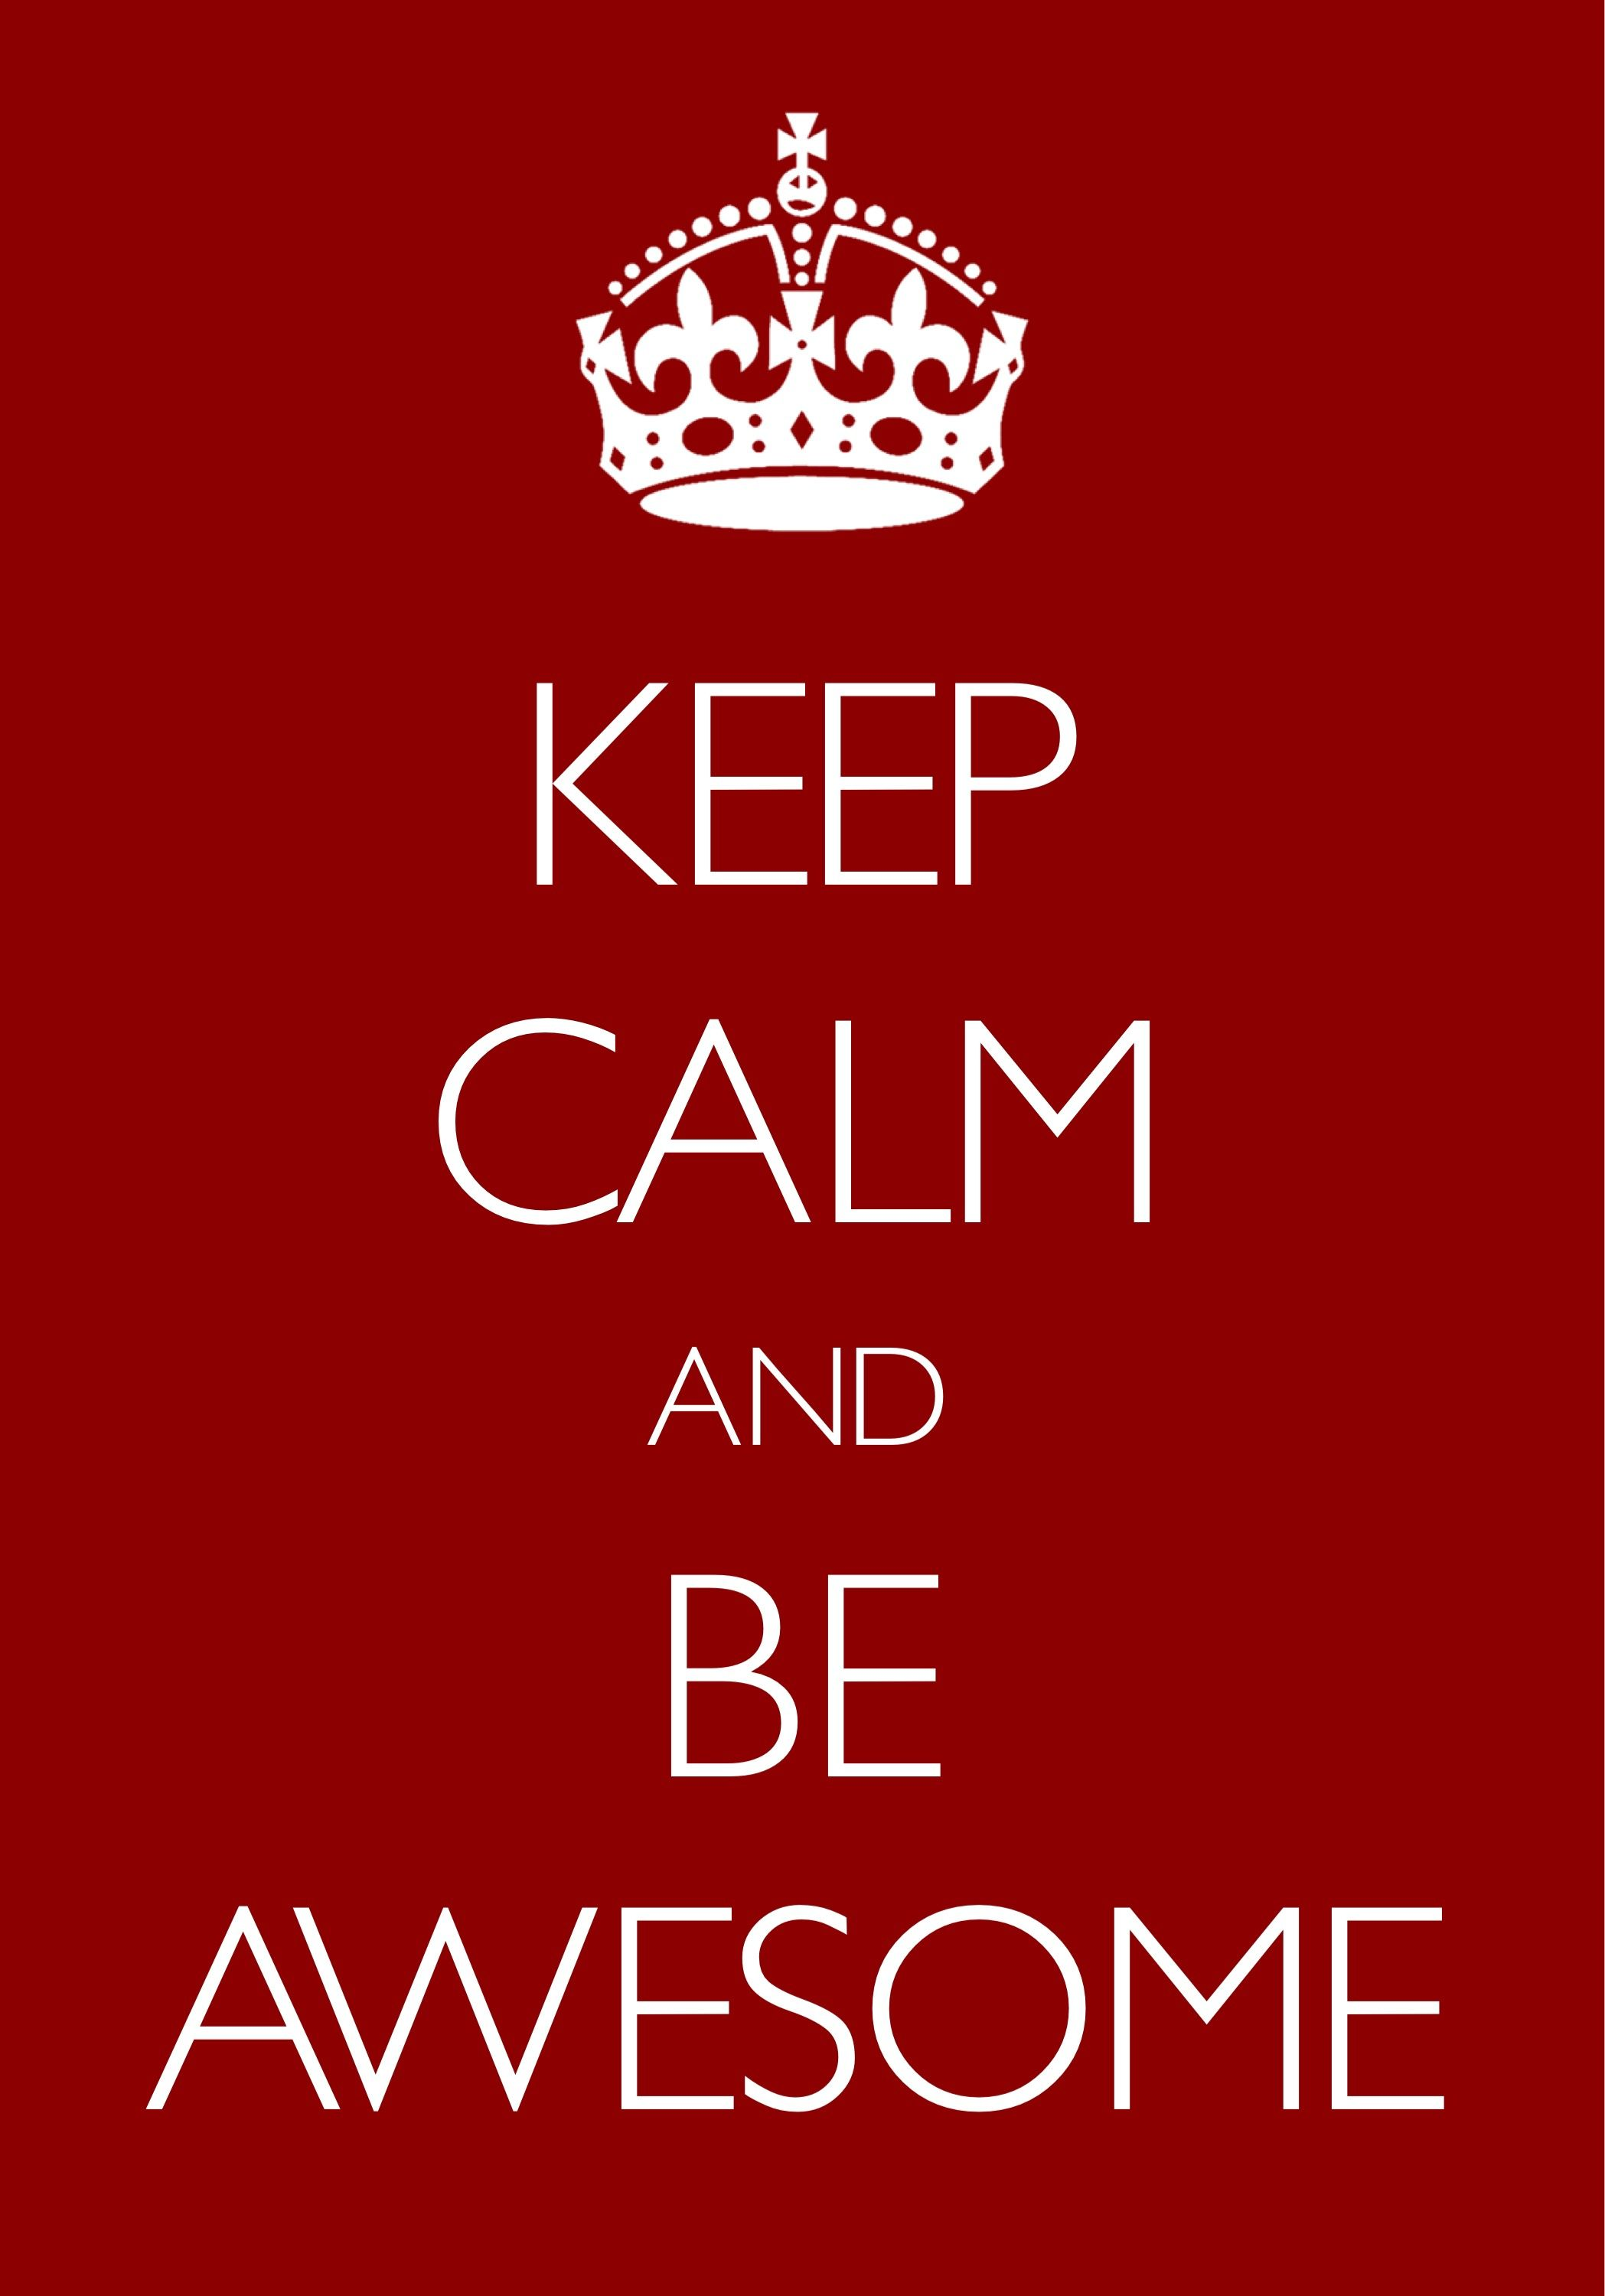 keep calm and be awesome / created with Keep Calm and Carry On for iOS #keepcalm #awesome                                                                                                                                                                                 Mehr